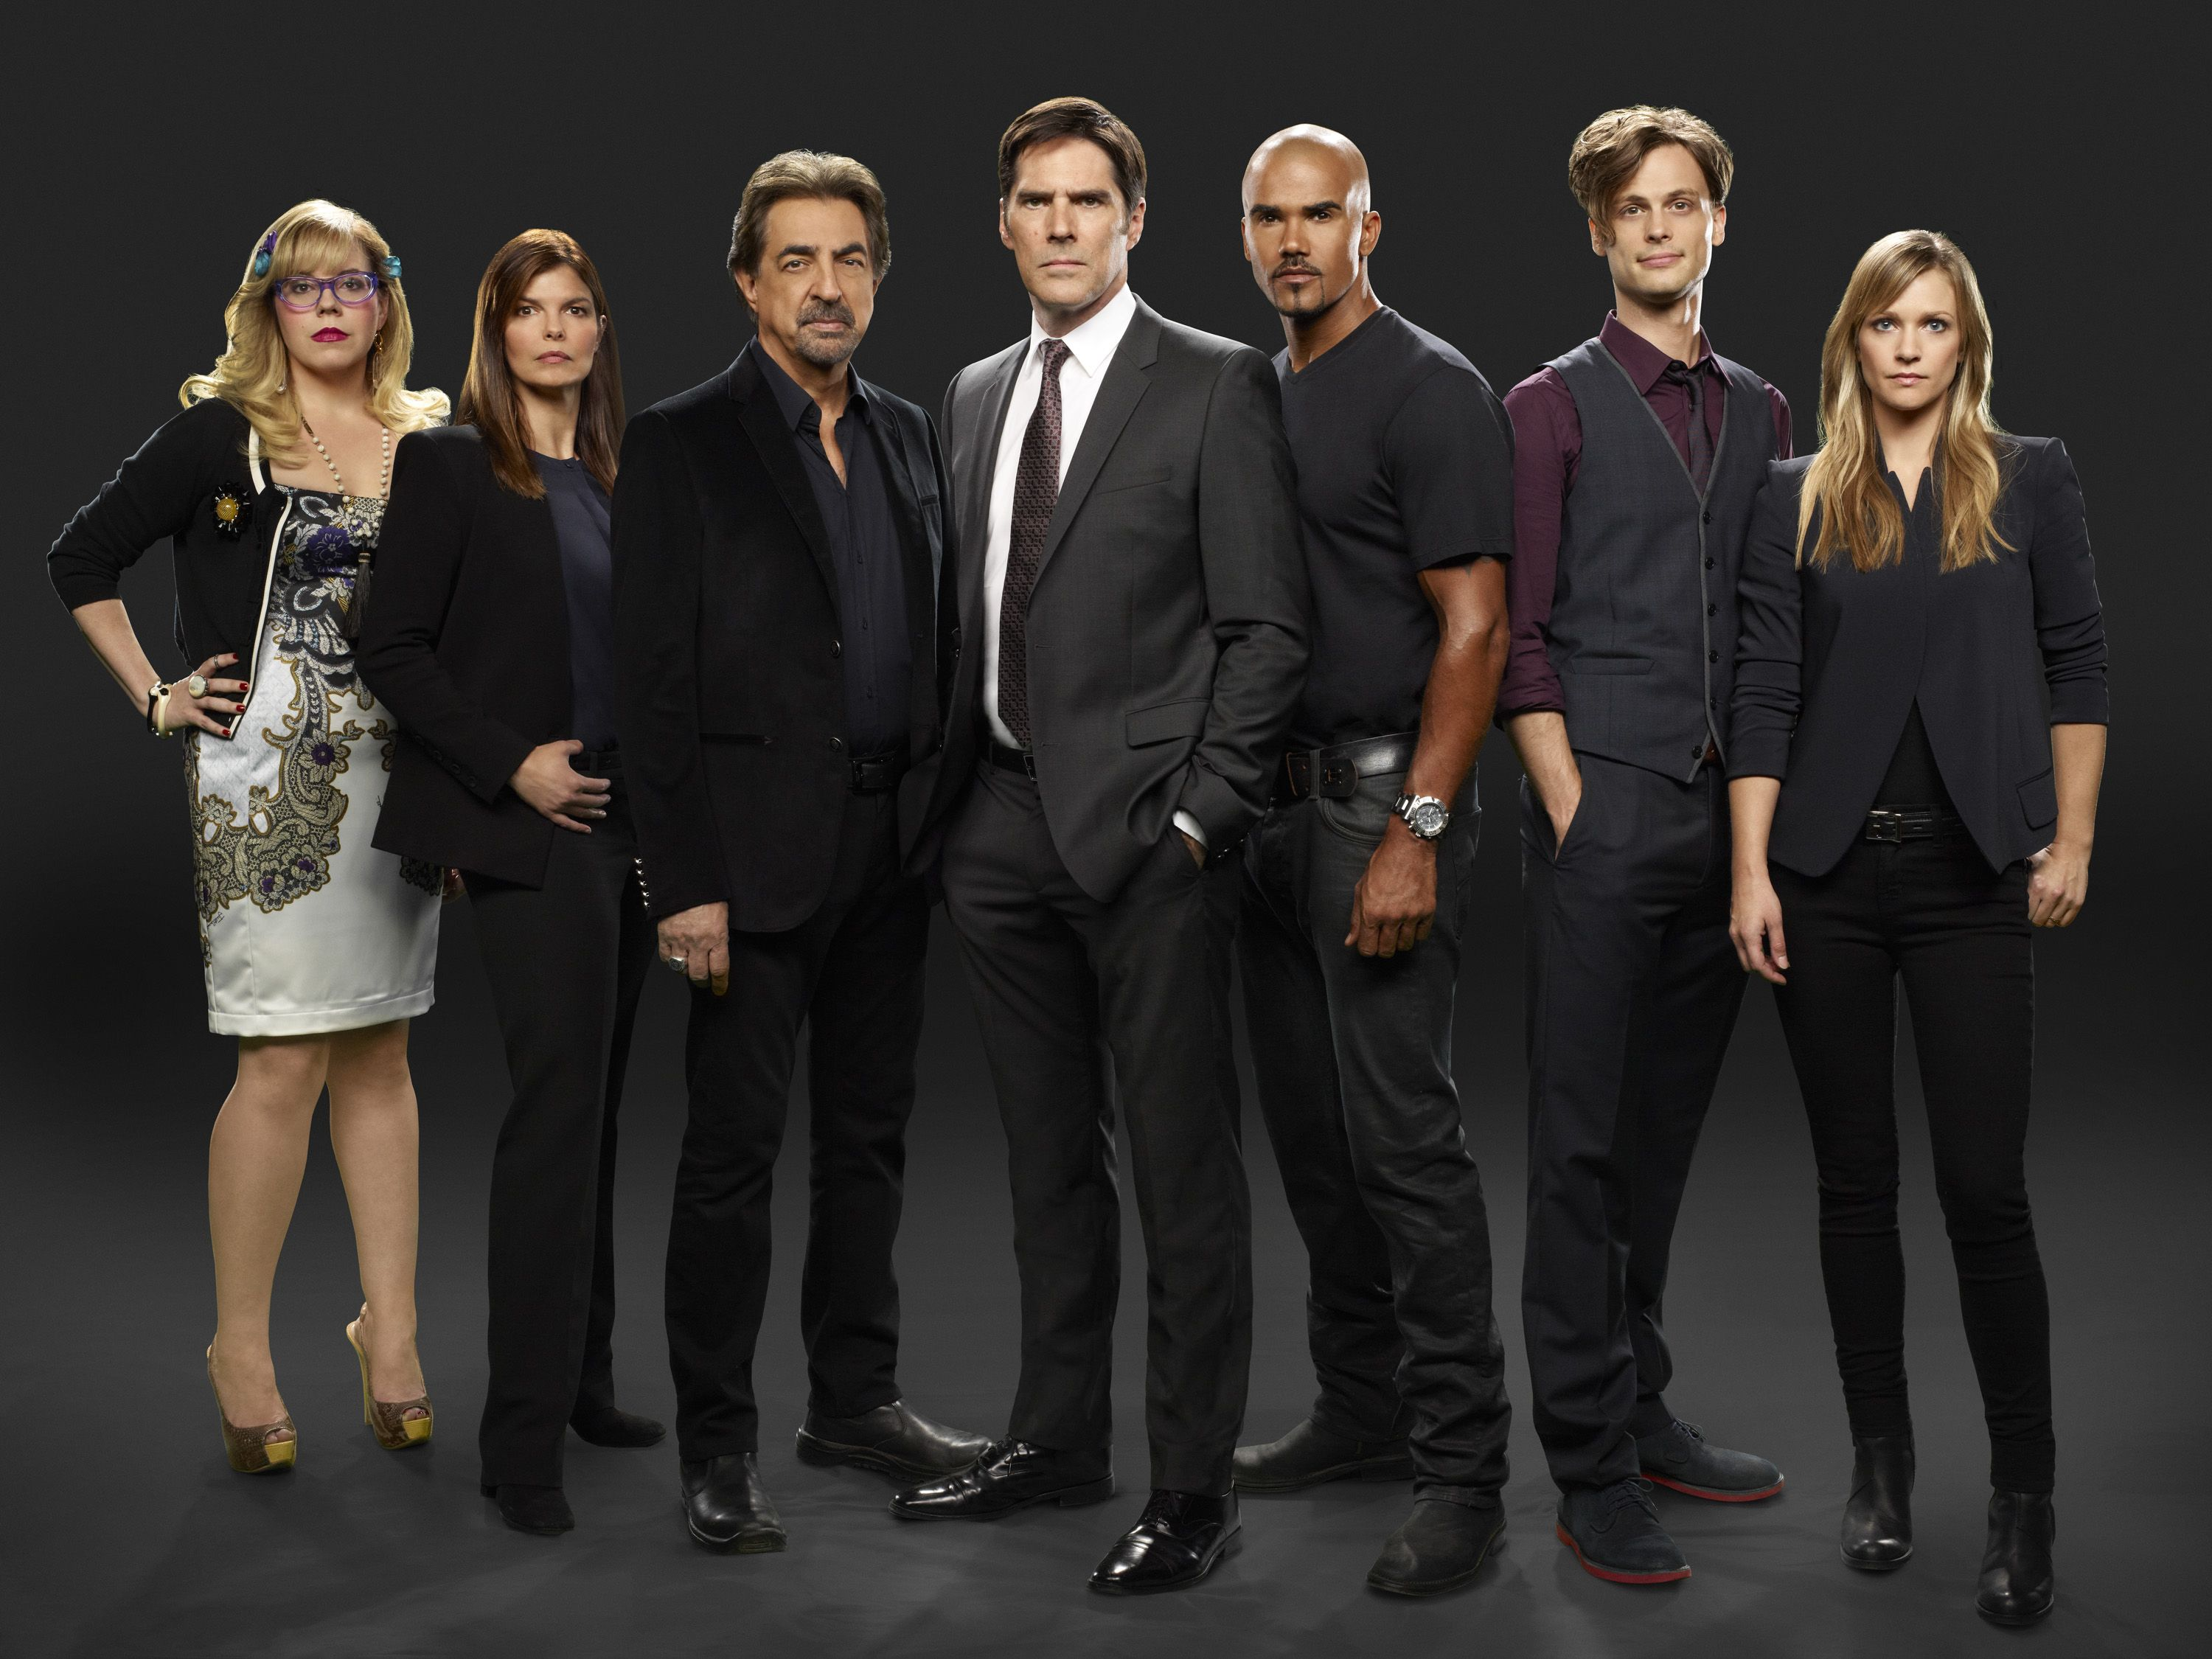 Will JJ & Reid Finally Get Together In Criminal Minds Season 15?